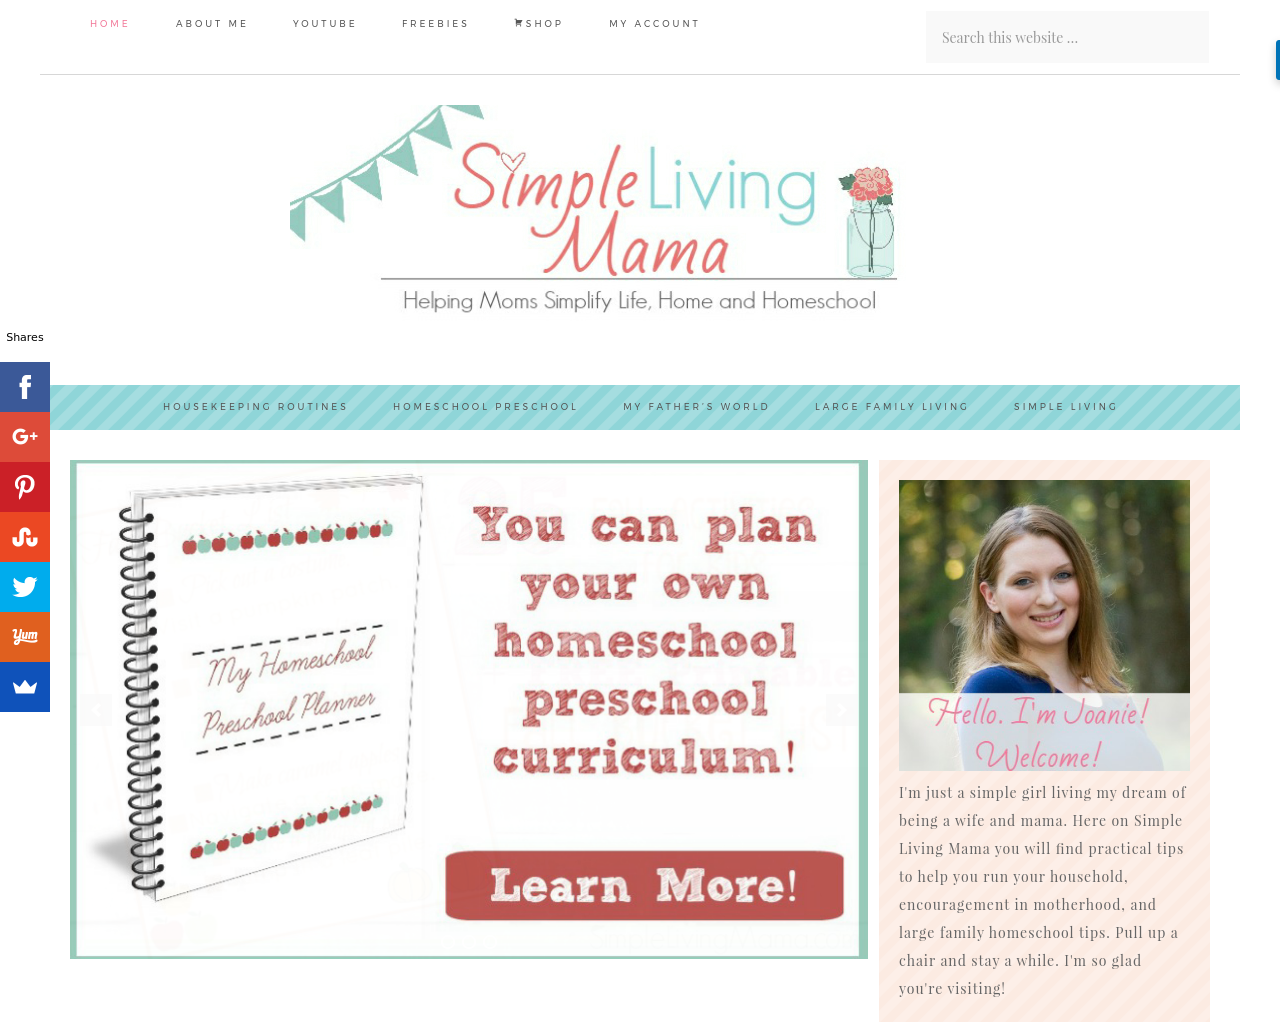 Simple-Living-Mama-Advertising-Reviews-Pricing